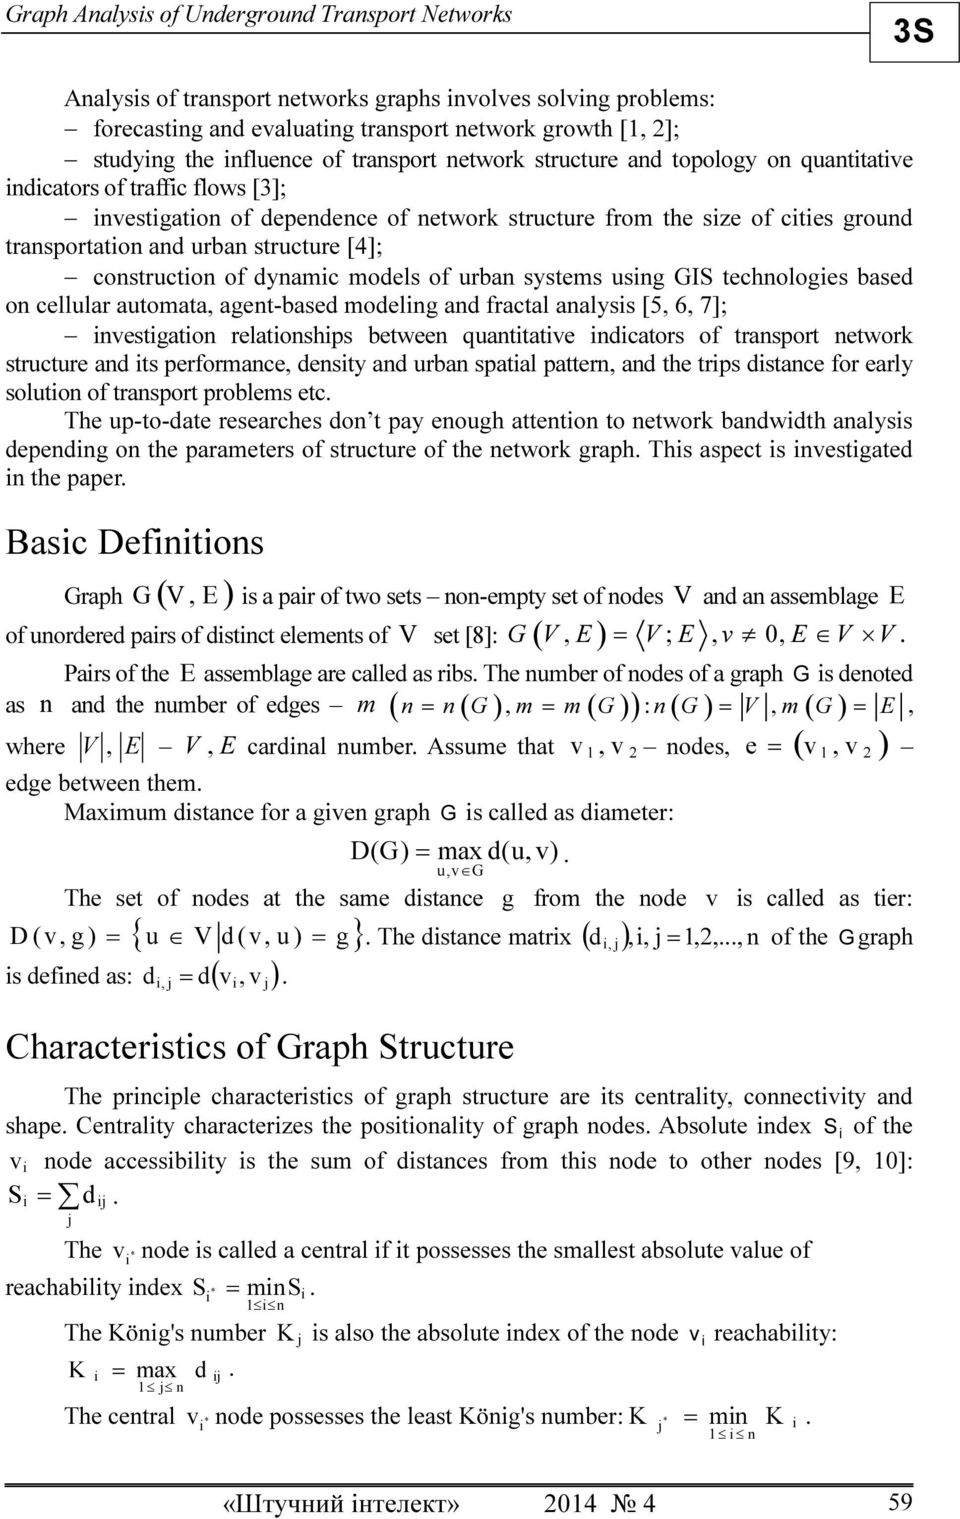 constructon of dynamc models of urban systems usng GIS technologes based on cellular automata, agent-based modelng and fractal analyss [5, 6, 7]; nvestgaton relatonshps between quanttatve ndcators of